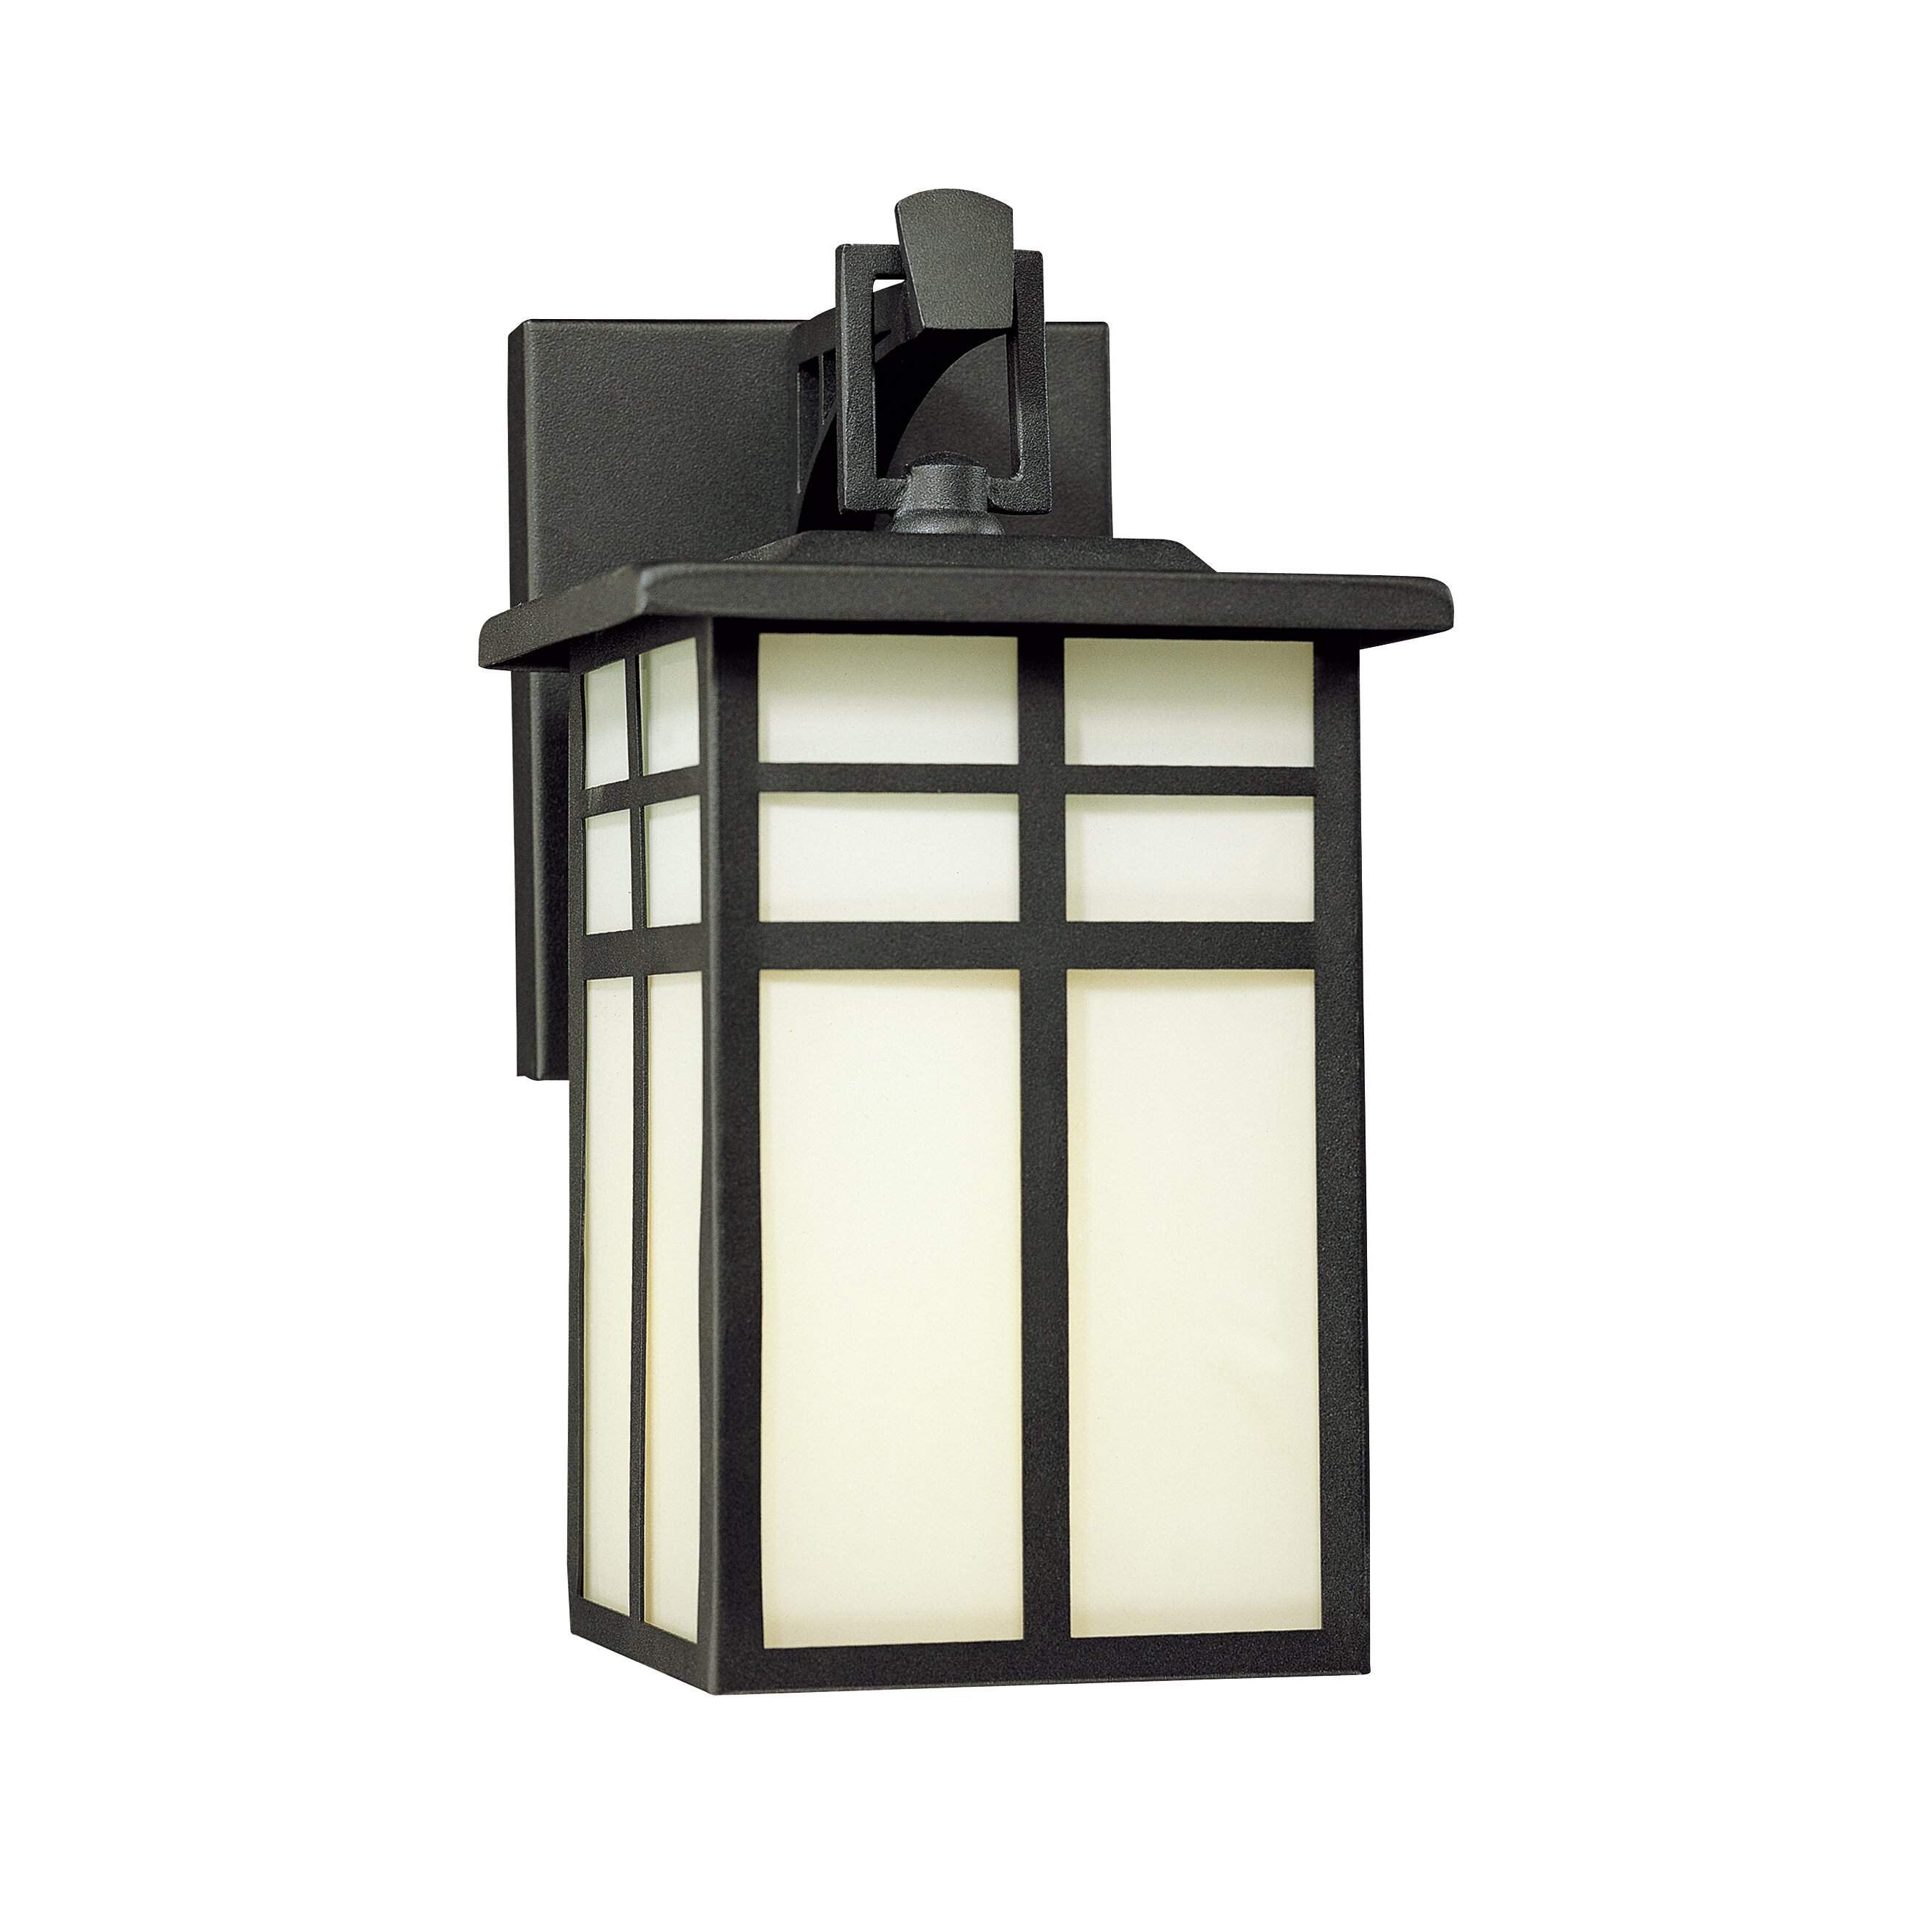 Thomas Lighting Mission 1 Light Outdoor Wall Lantern & Reviews Wayfair